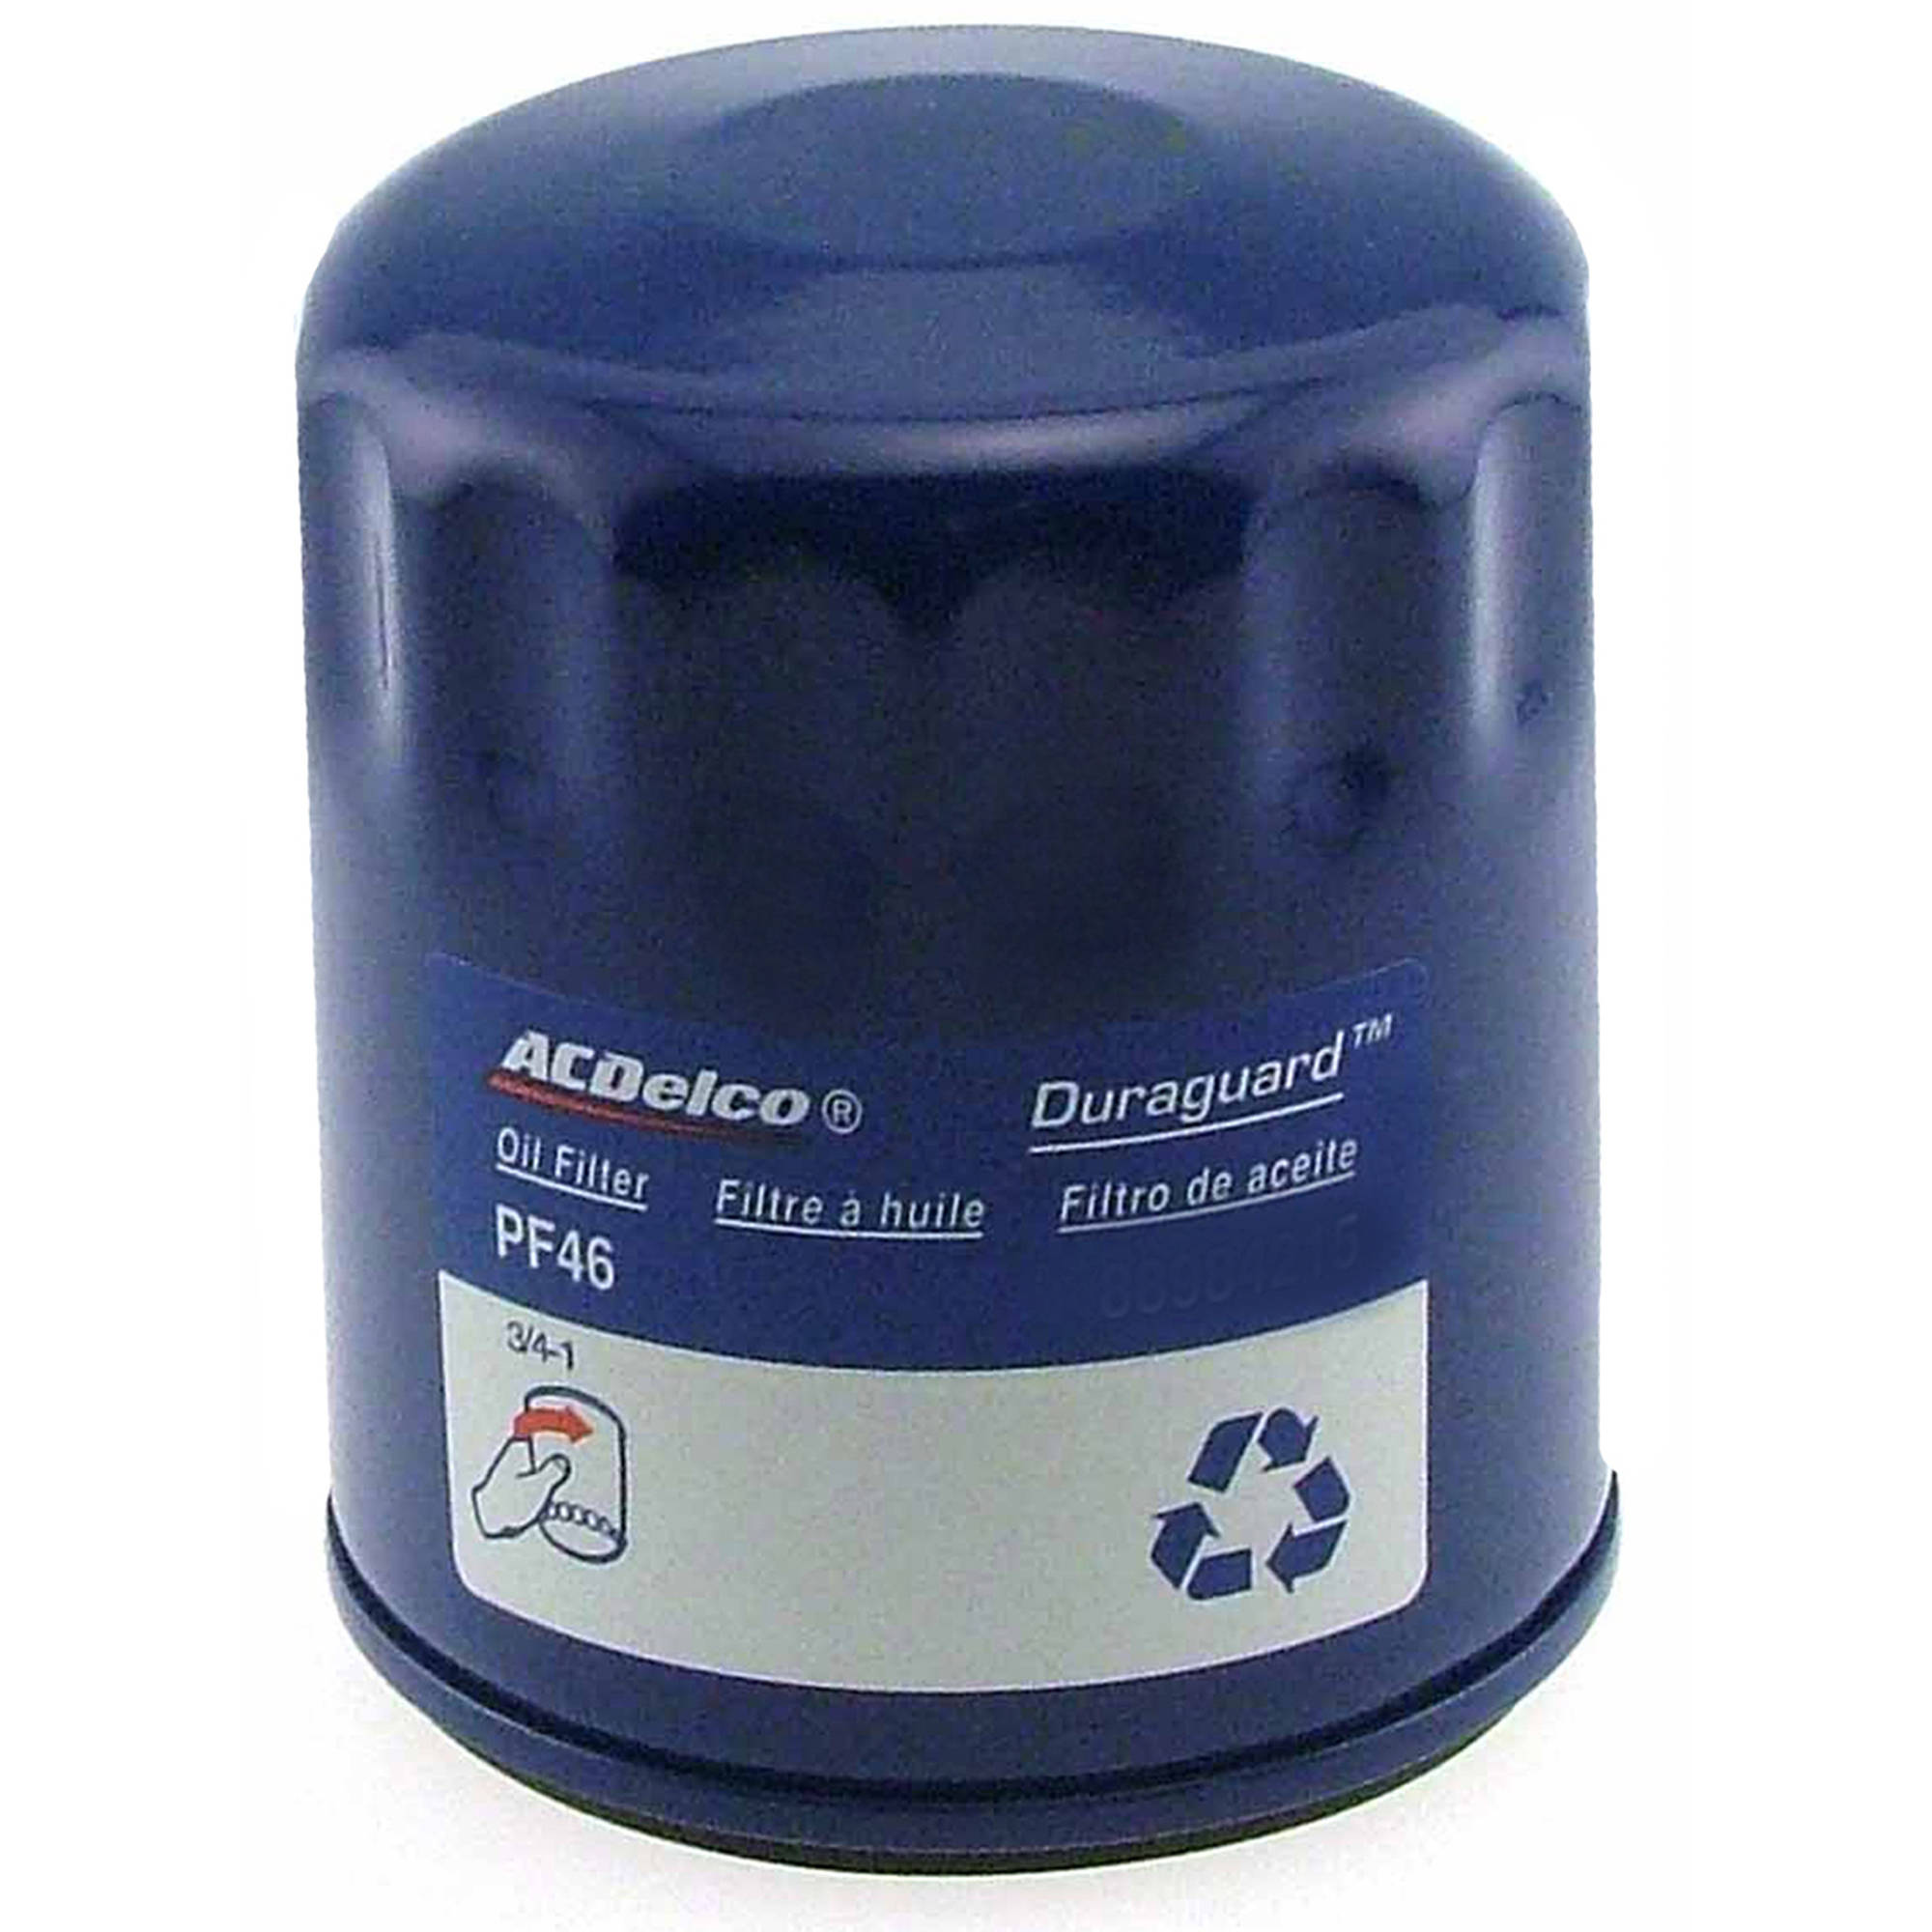 AC Delco Oil Filter, ACPPF46F, Case of 12 Filters